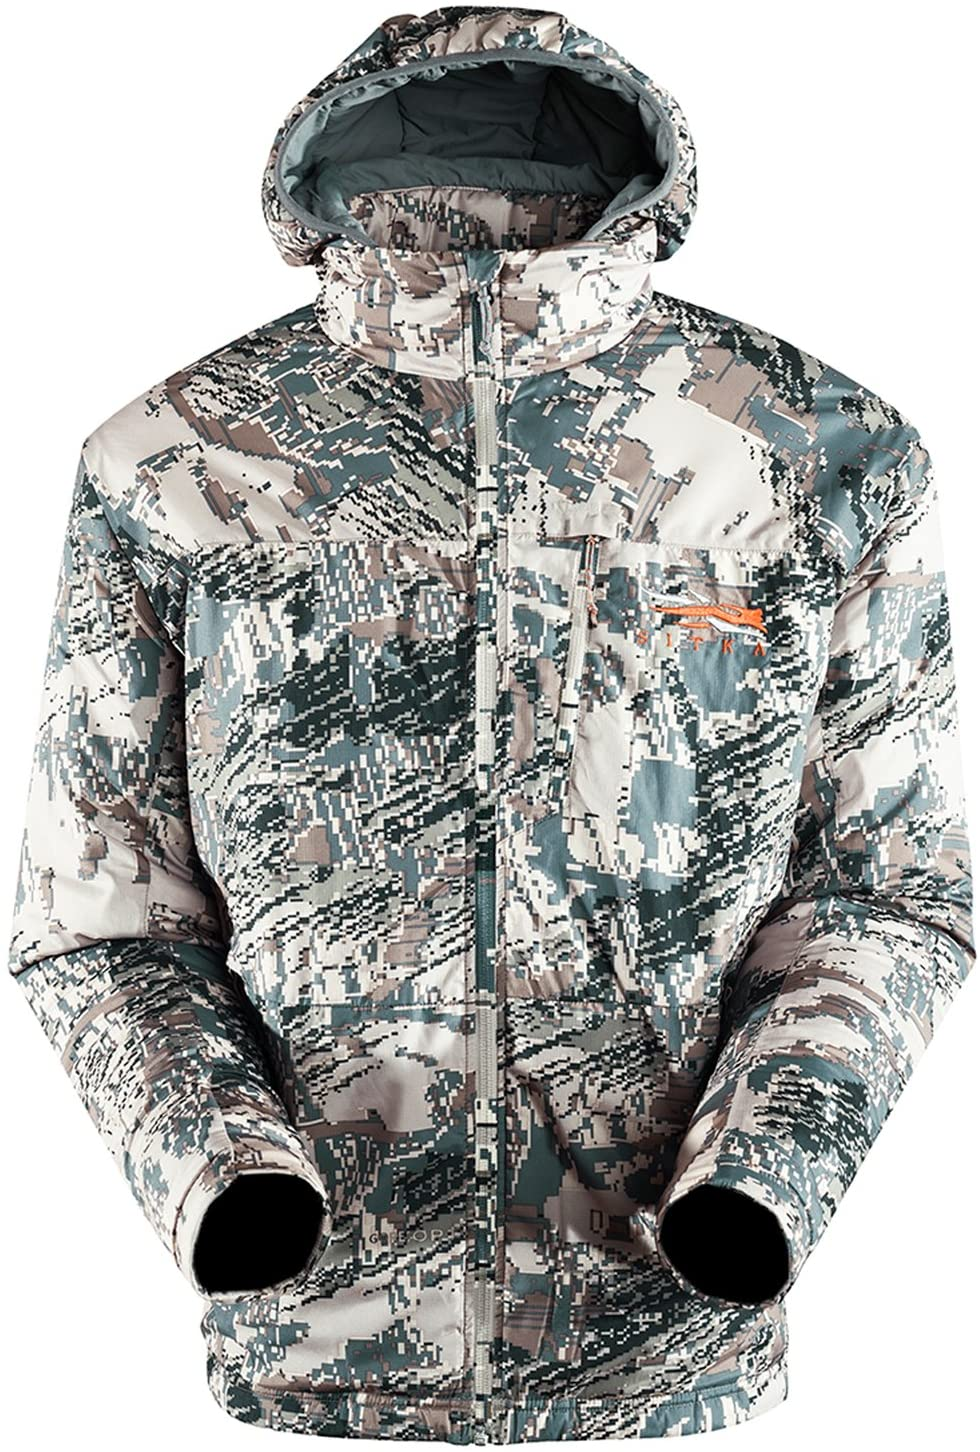 SITKA Gear Men's Kelvin Lite Hunting Hoody, Optifade Open Country, Large Tall